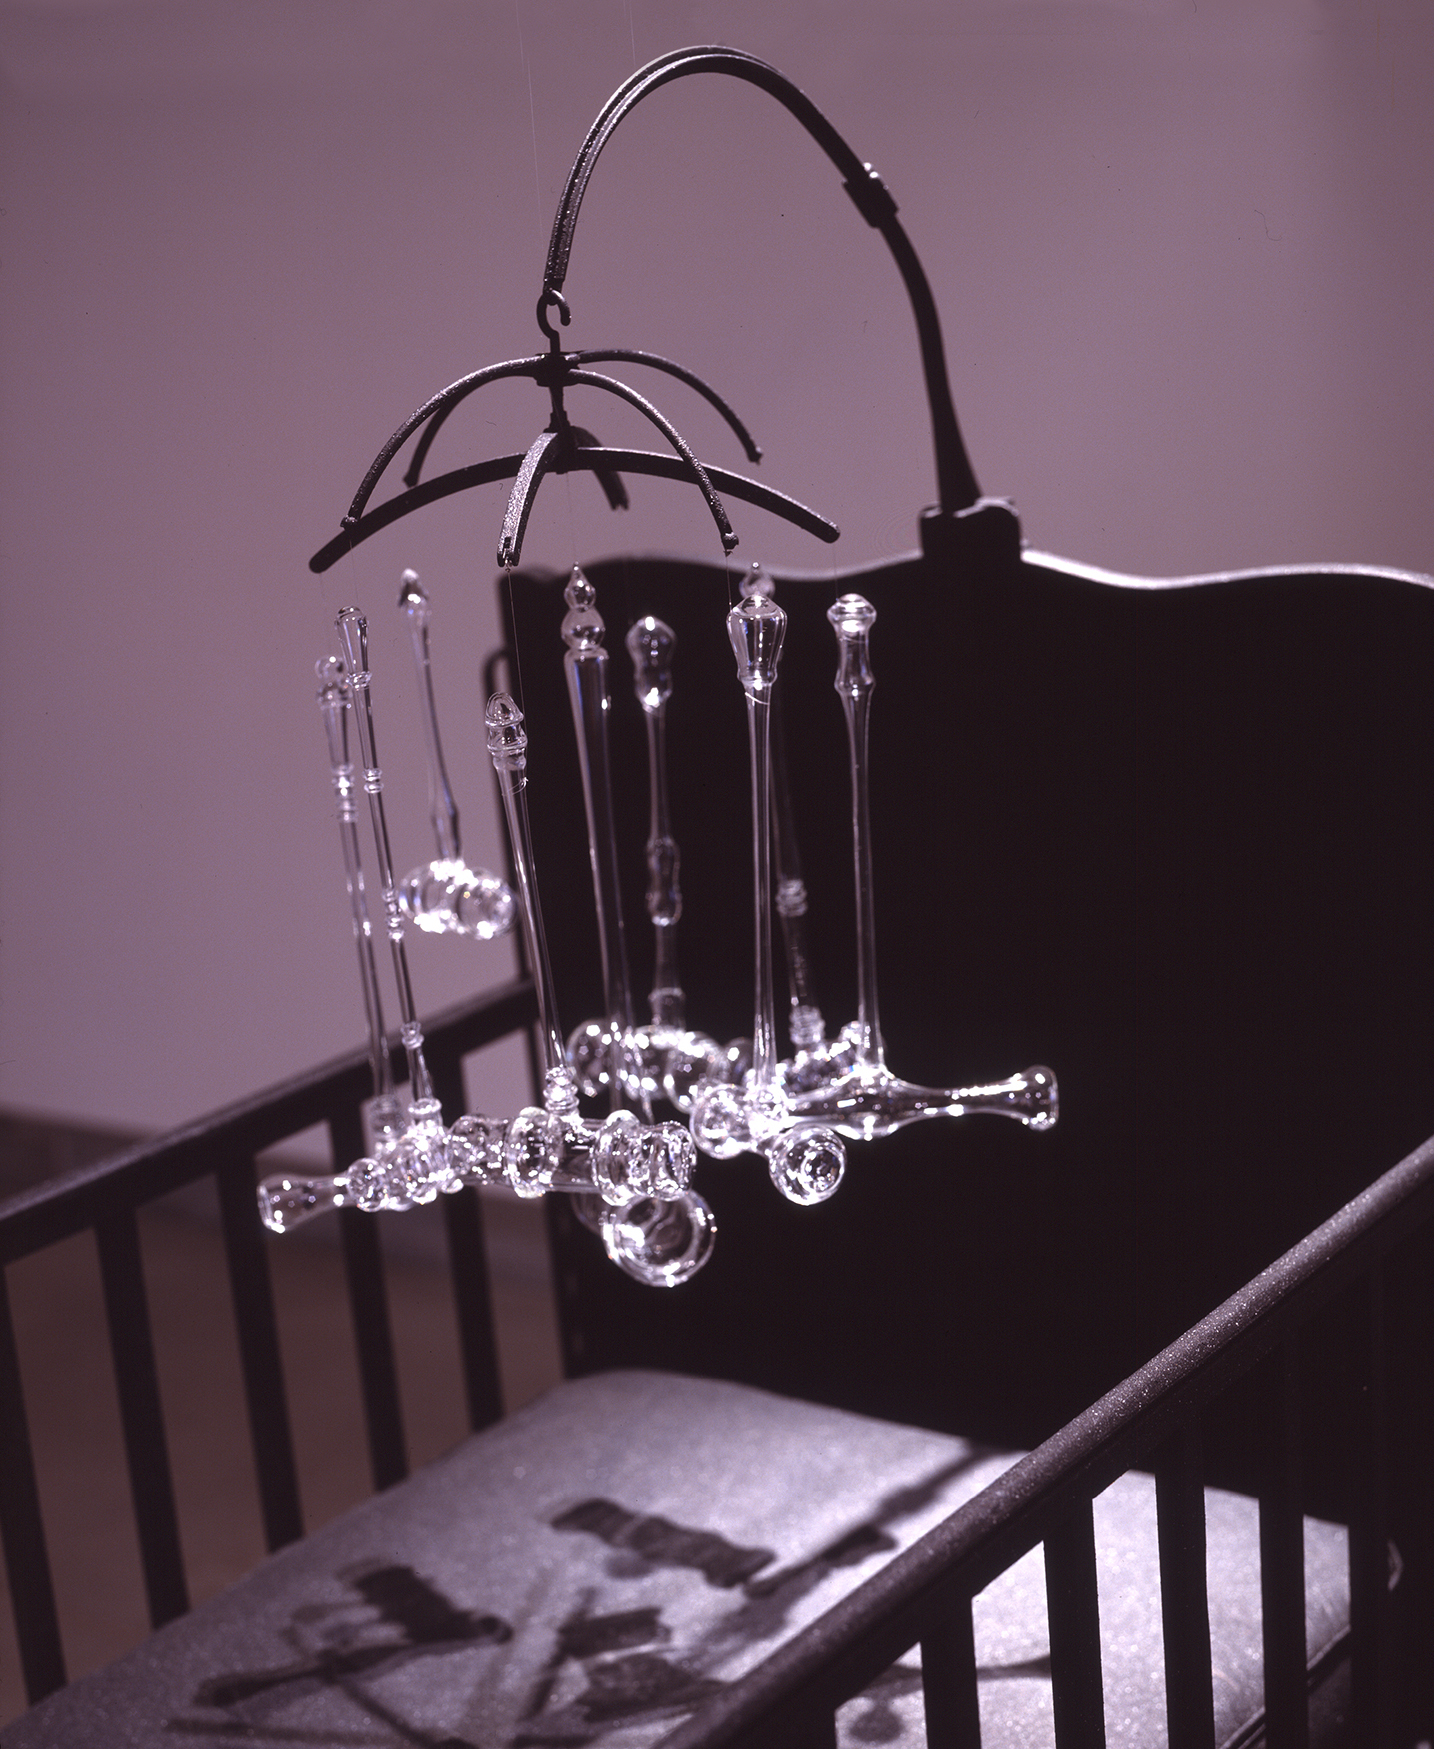 Detail of INFANT JUSTICE, 2002 crib with mobile consisting of nine glass gavels